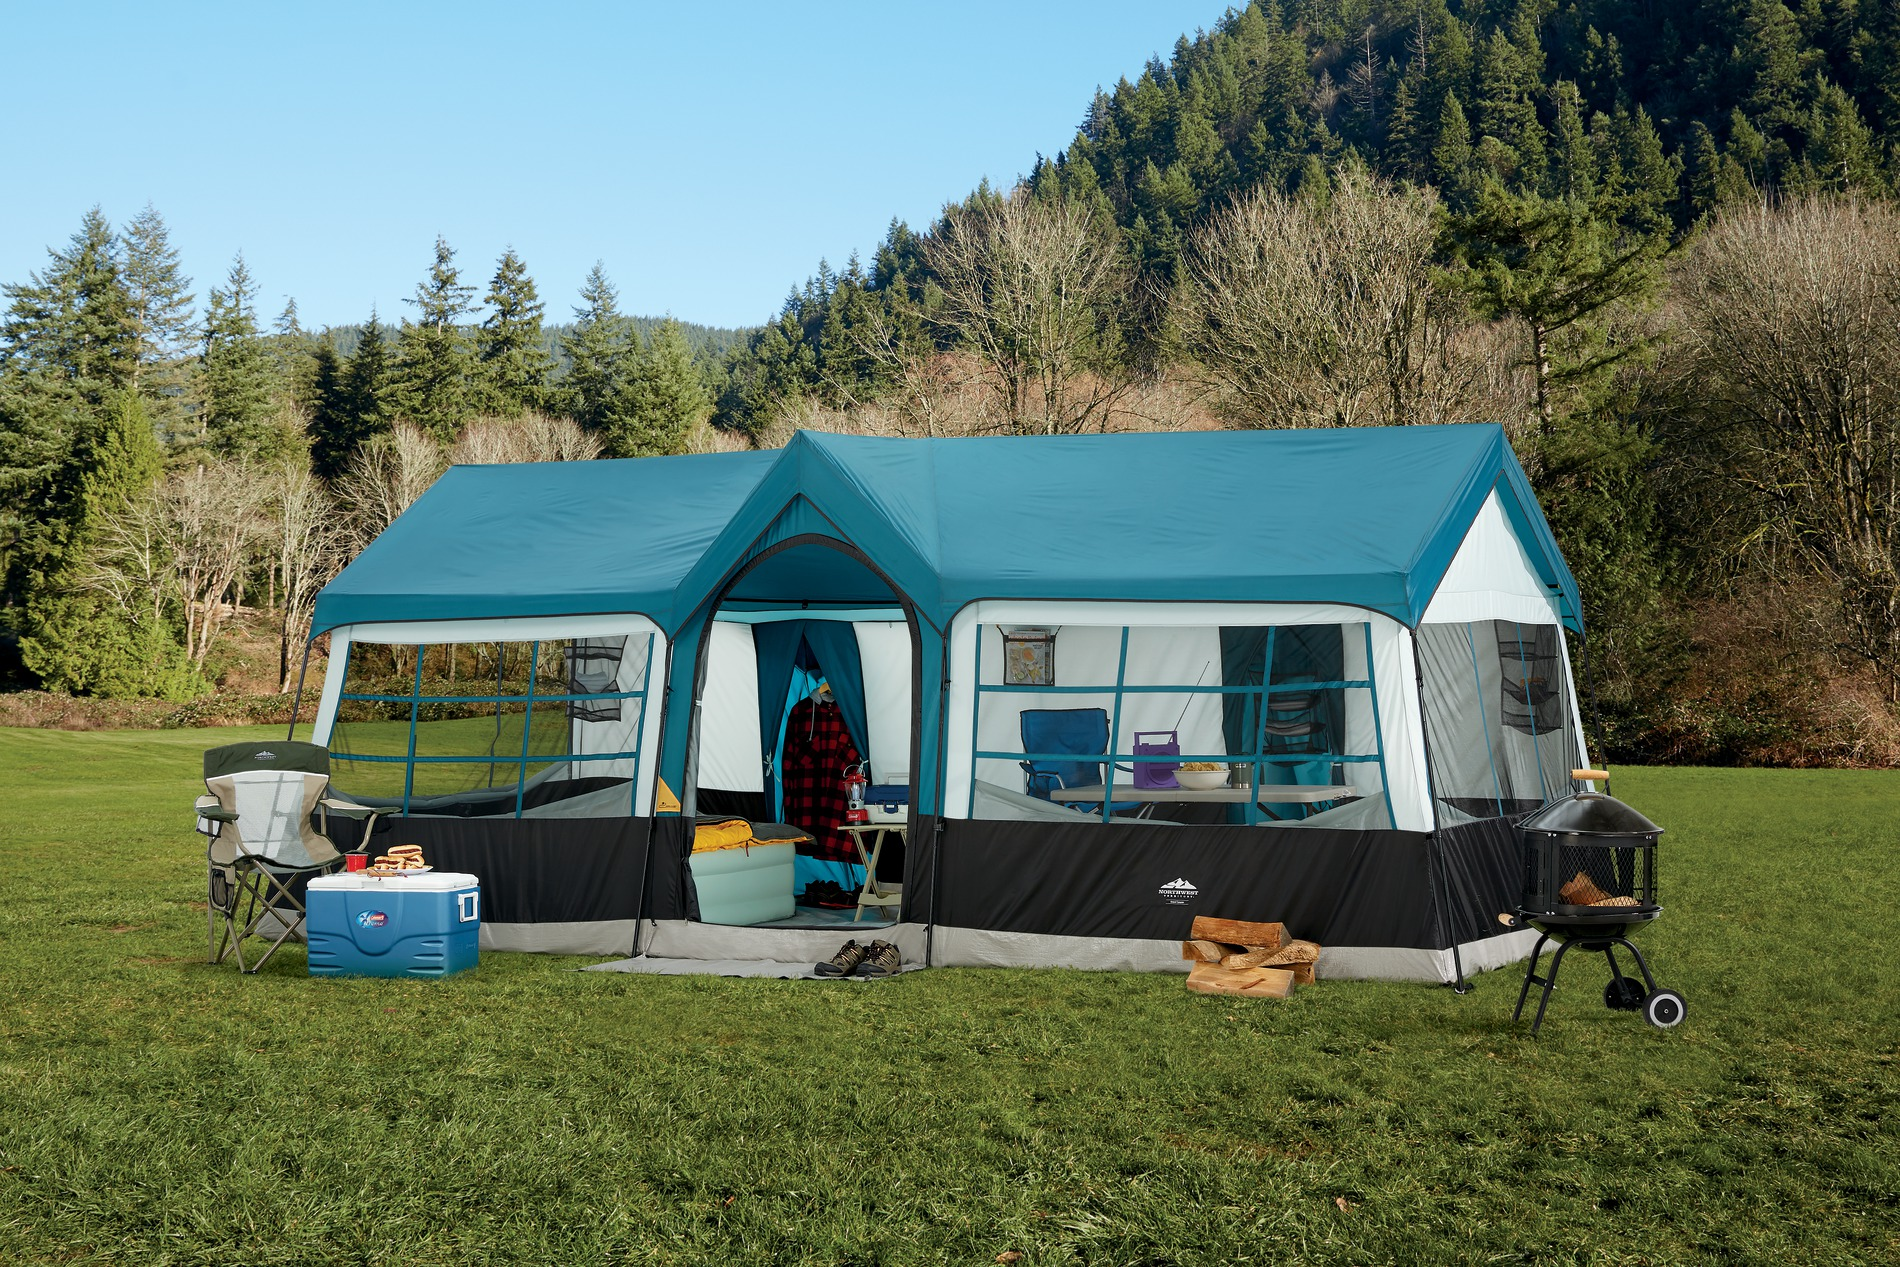 Northwest Territory Grand Canyon 20' x 12' - Fitness ...